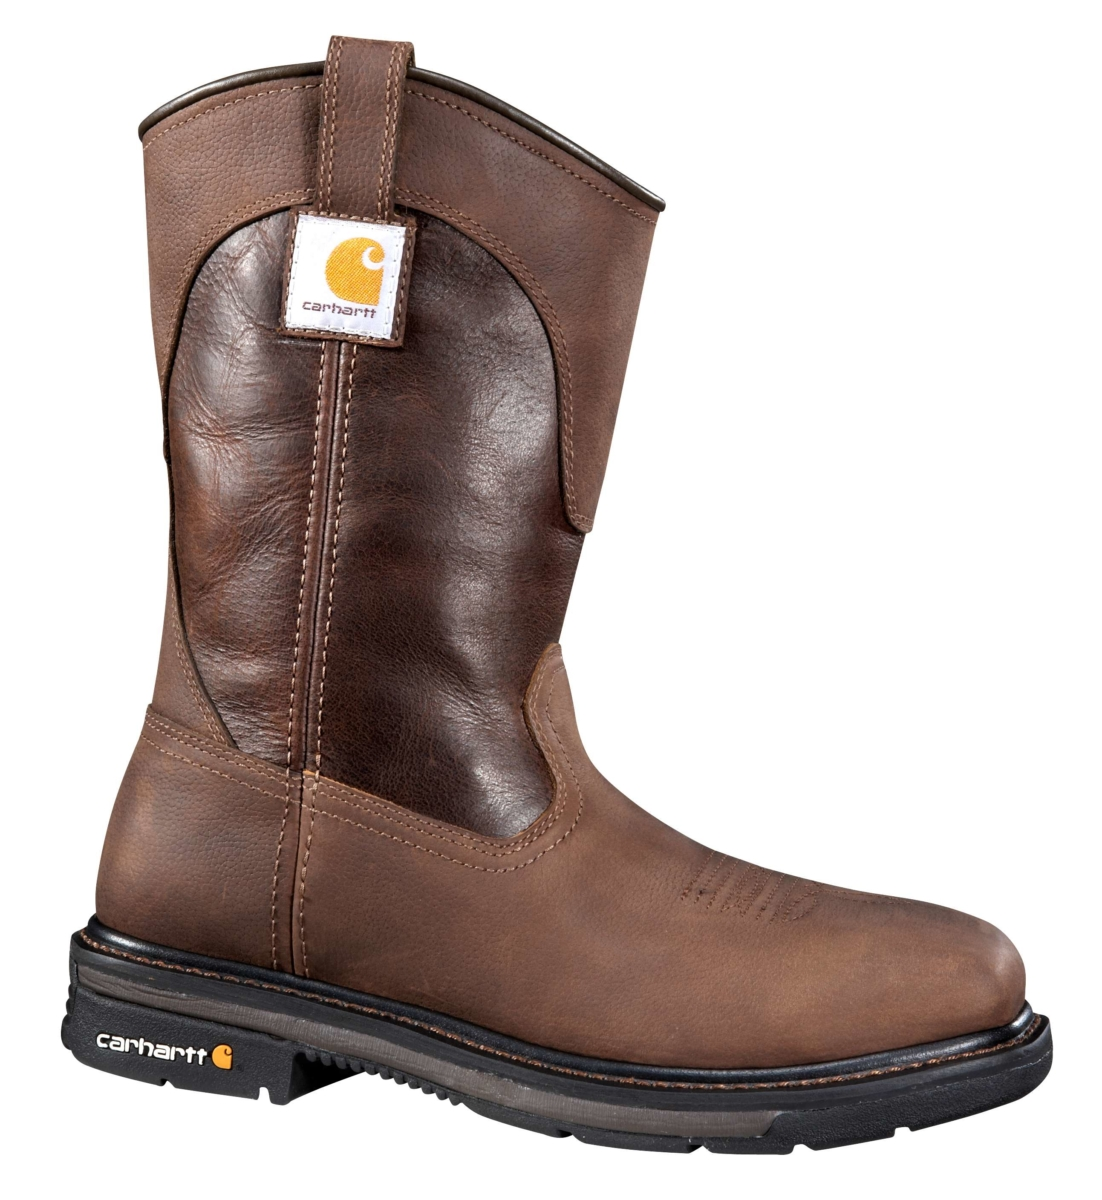 Carhartt 11-Inch Square Steel Toe Wellington Boot Brown Oil Tanned USA - GOOFASH - Mens BOOTS